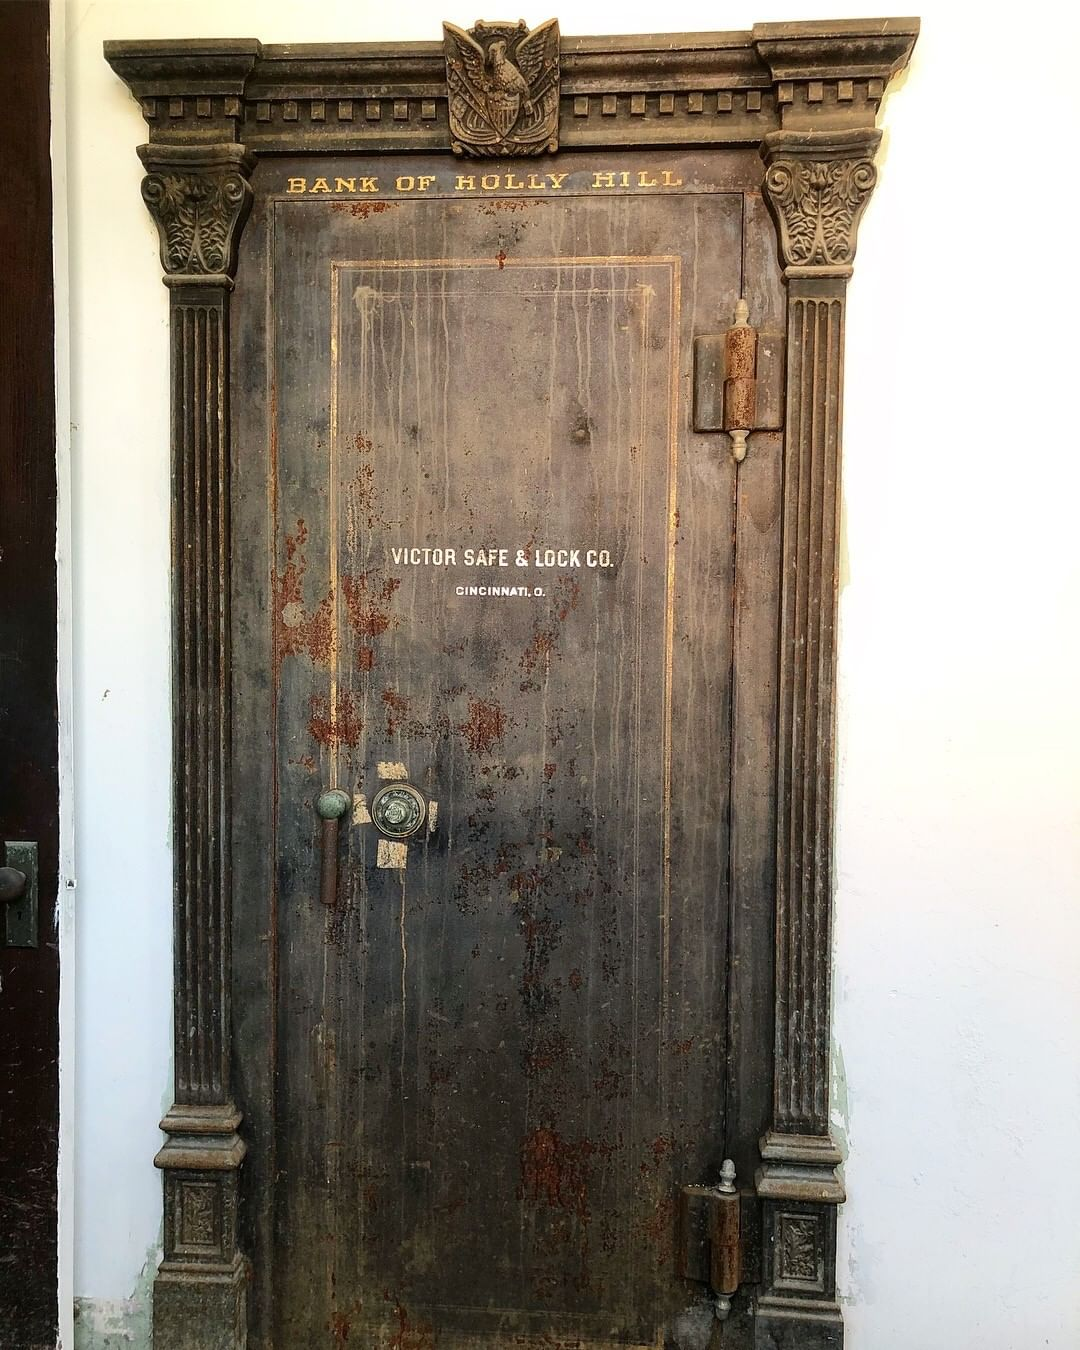 The Bank of Holly Hill vault dates between 1905 and 1915. The bank re-chartered as the First National Bank of Holly Hill. The bank lives on as the First National Bank of South Carolina. This vault is a Victor Safe and Lock Co